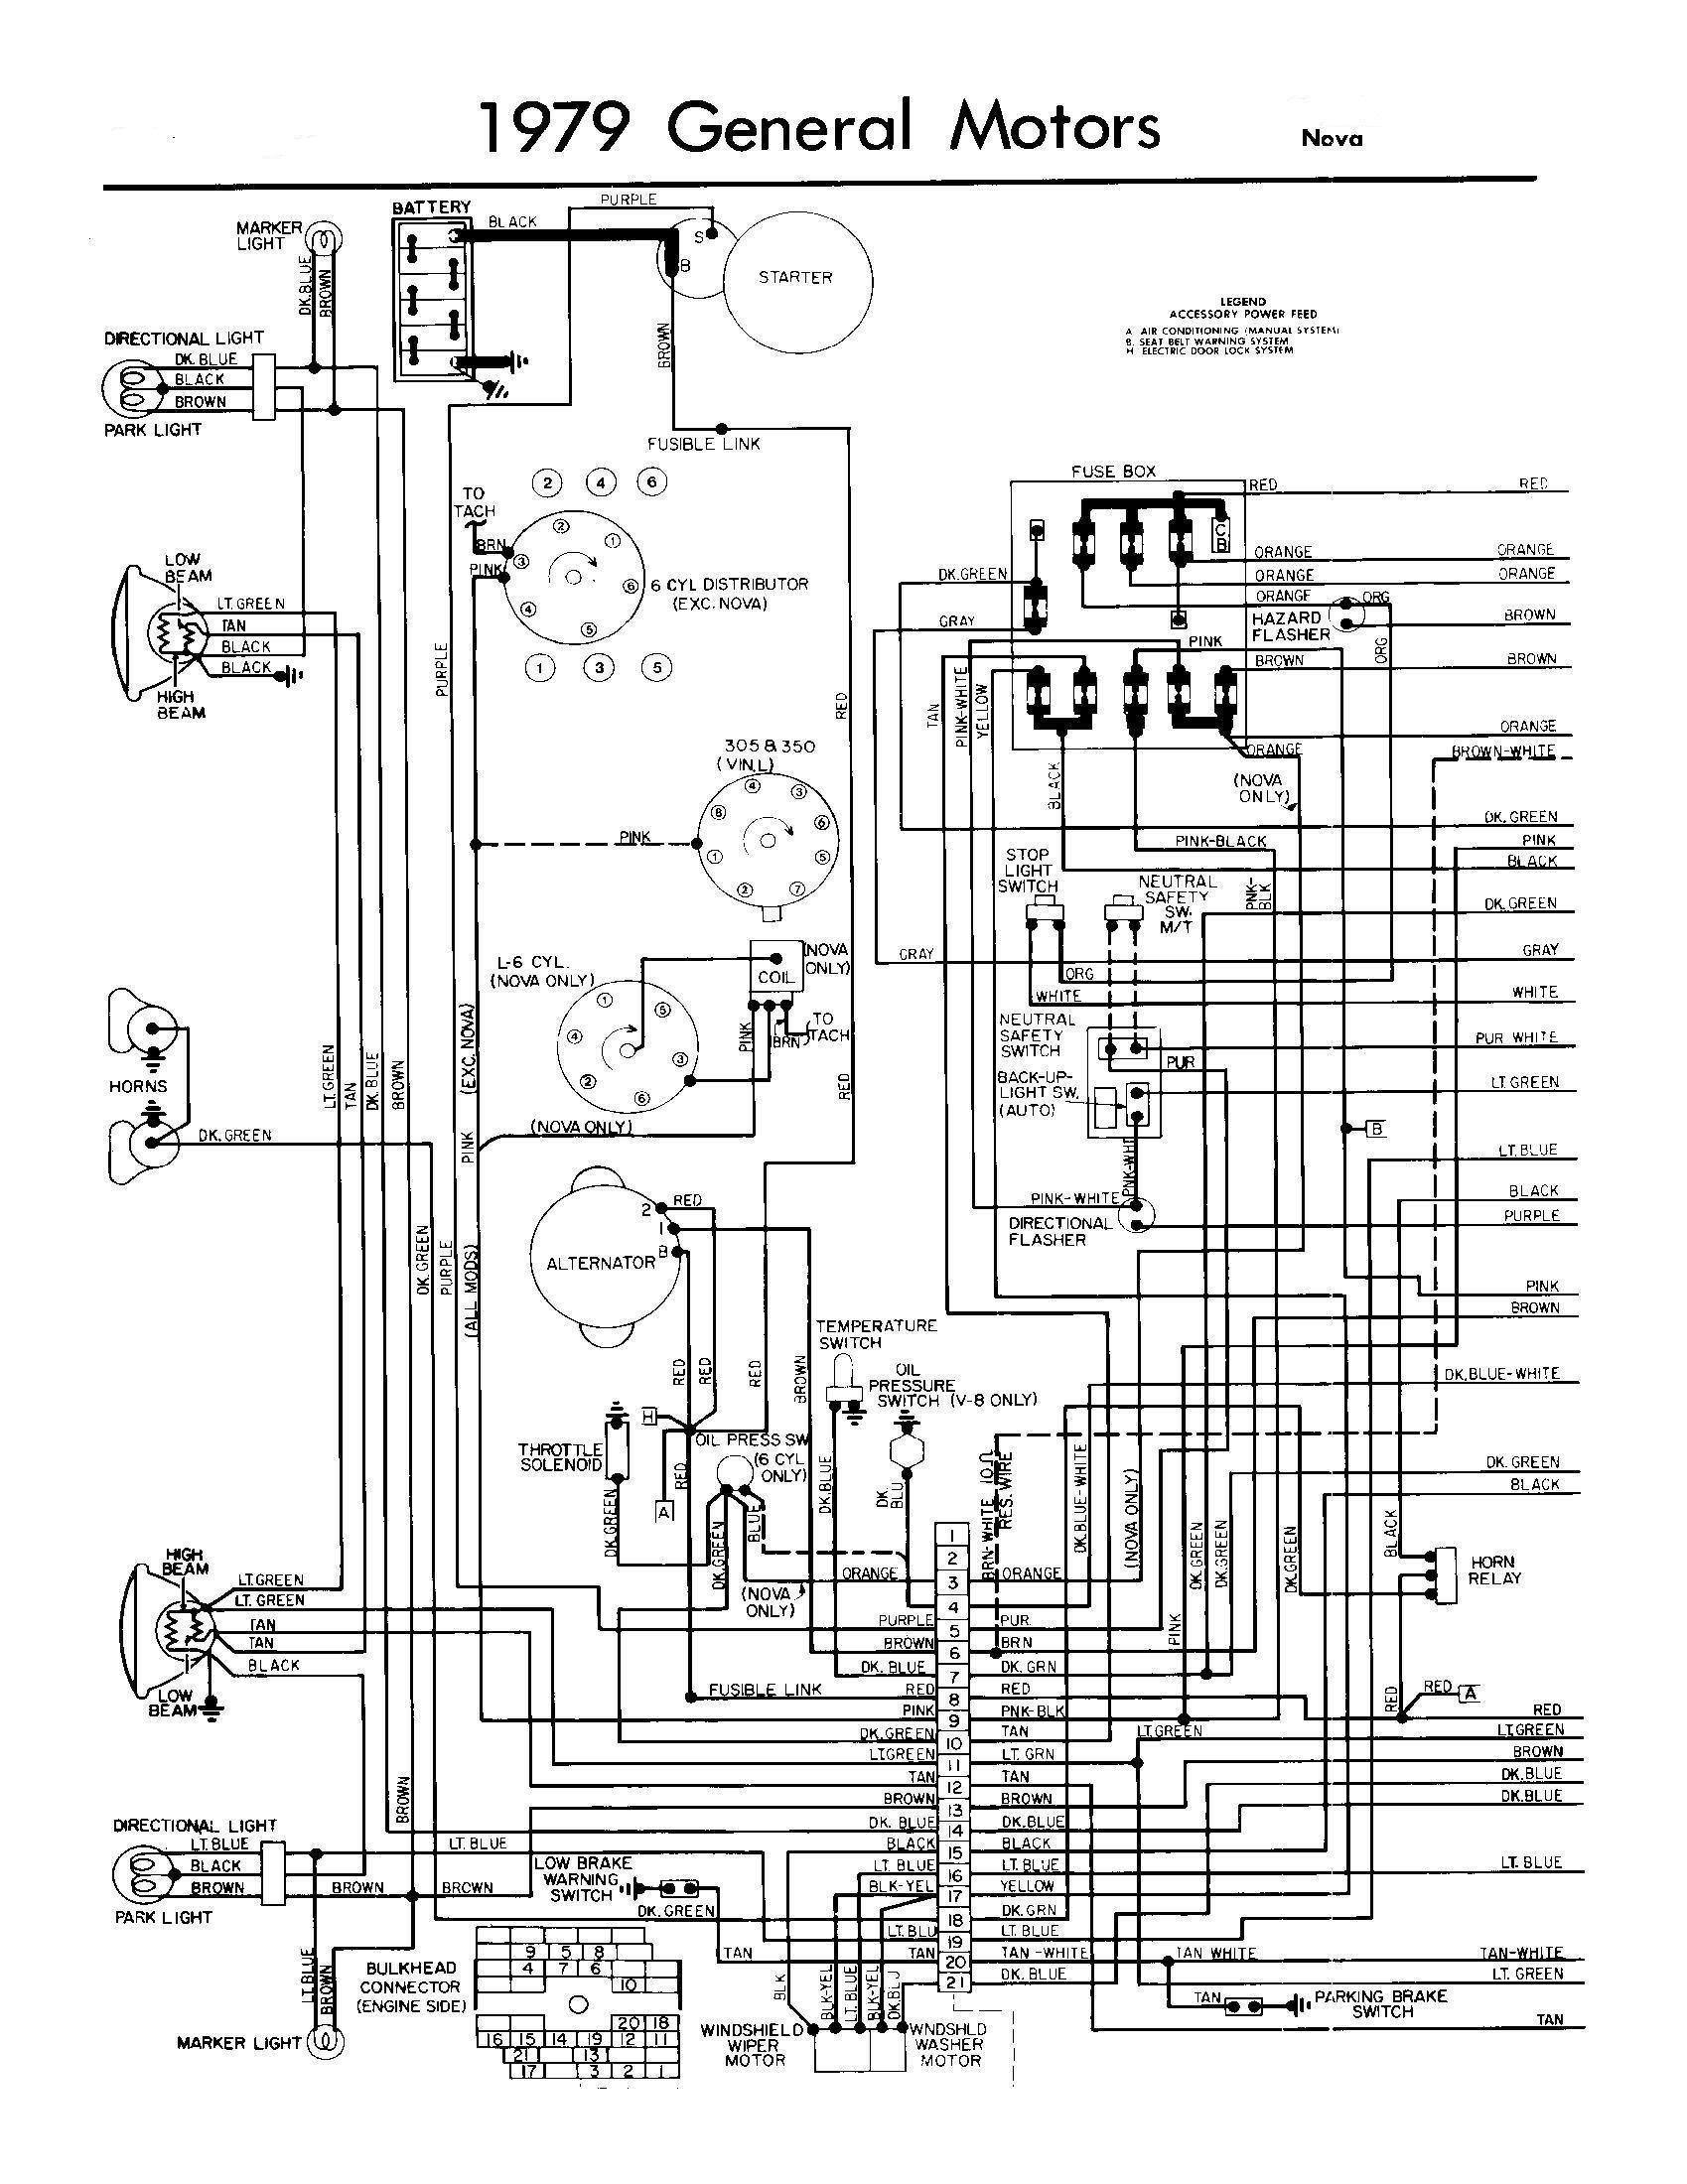 2001 Oldsmobile Aurora Engine Diagram 1998 Oldsmobile Intrigue Engine Diagram Worksheet and Wiring Diagram •